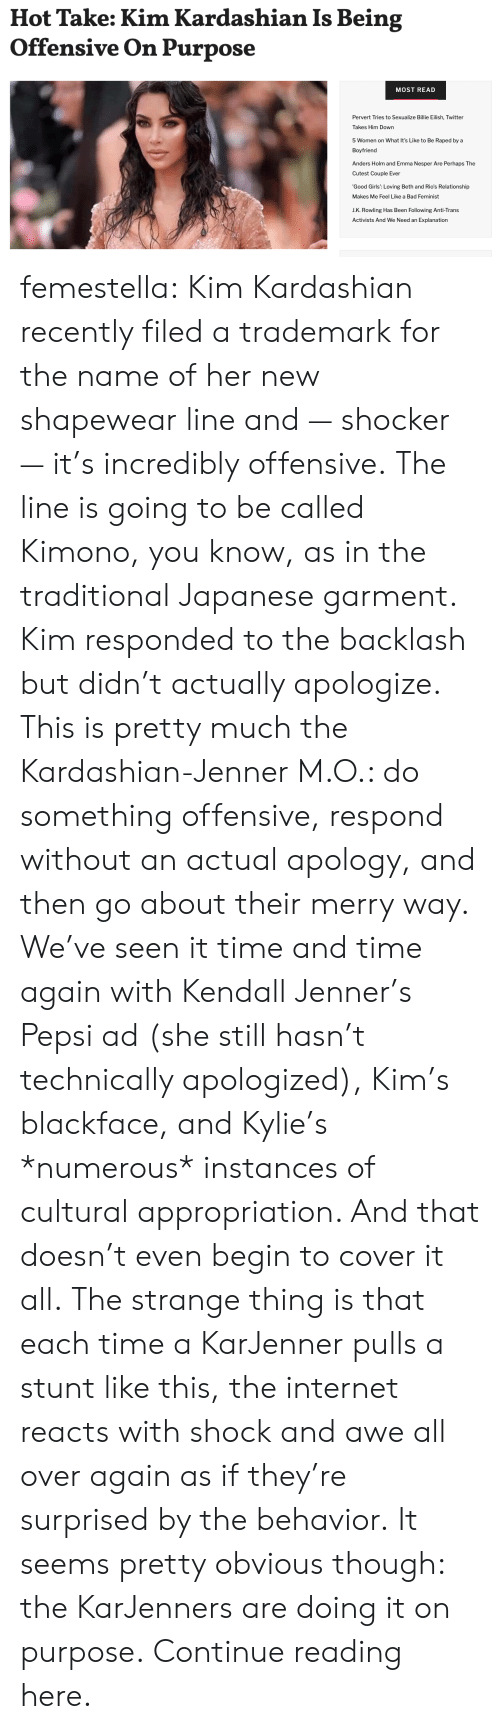 Apology: Hot Take: Kim Kardashian Is Being  Offensive On Purpose  MOST READ  Pervert Tries to Sexualize Billie Eilish, Twitter  Takes Him Down  5 Women on What It's Like to Be Raped by a  Boyfriend  Anders Holm and Emma Nesper Are Perhaps The  Cutest Couple Ever  'Good Girls': Loving Beth and Rio's Relationship  Makes Me Feel Like a Bad Feminist  J.K. Rowling Has Been Following Anti-Trans  Activists And We Need an Explanation femestella: Kim Kardashian recently filed a trademark for the name of her new shapewear line and — shocker — it's incredibly offensive. The line is going to be called Kimono, you know, as in the traditional Japanese garment.  Kim responded to the backlash but didn't actually apologize. This is pretty much the Kardashian-Jenner M.O.: do something offensive, respond without an actual apology, and then go about their merry way. We've seen it time and time again with Kendall Jenner's Pepsi ad (she still hasn't technically apologized), Kim's blackface, and Kylie's *numerous* instances of cultural appropriation. And that doesn't even begin to cover it all. The strange thing is that each time a KarJenner pulls a stunt like this, the internet reacts with shock and awe all over again as if they're surprised by the behavior. It seems pretty obvious though: the KarJenners are doing it on purpose. Continue reading here.